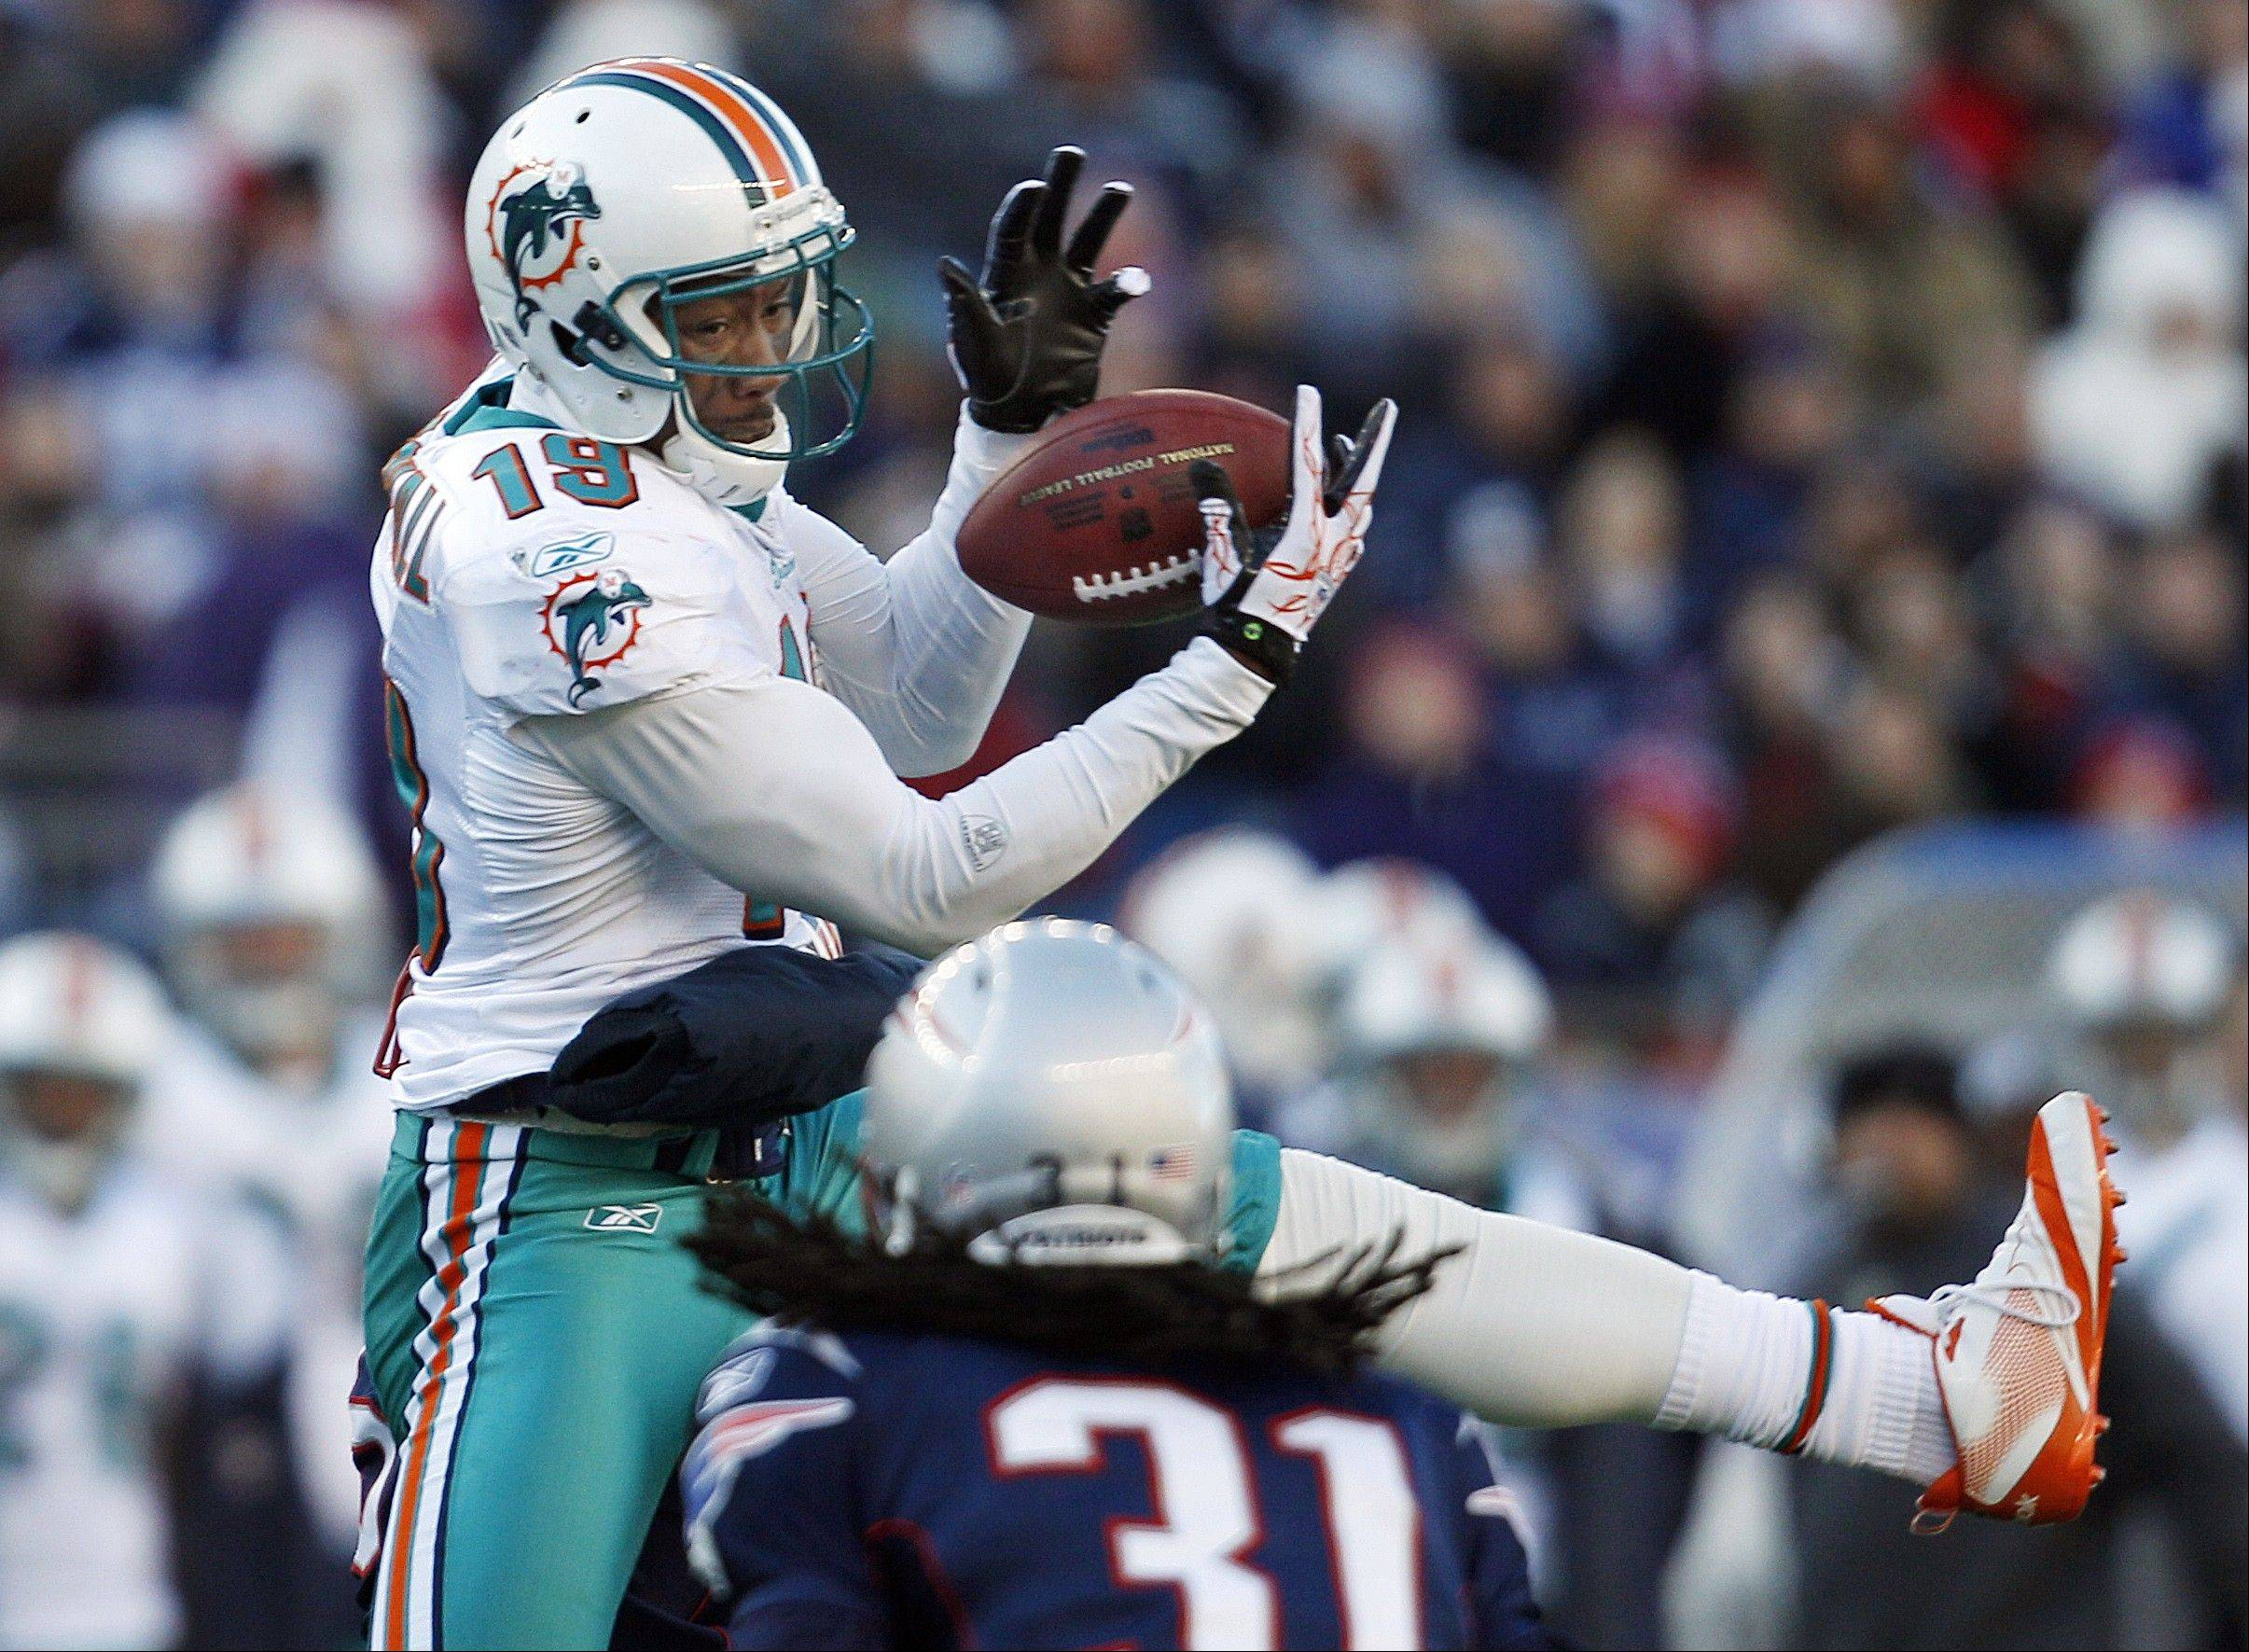 Miami Dolphins wide receiver Brandon Marshall (19) is headed to the Chicago Bears, who traded two third-round draft picks for the star receiver.